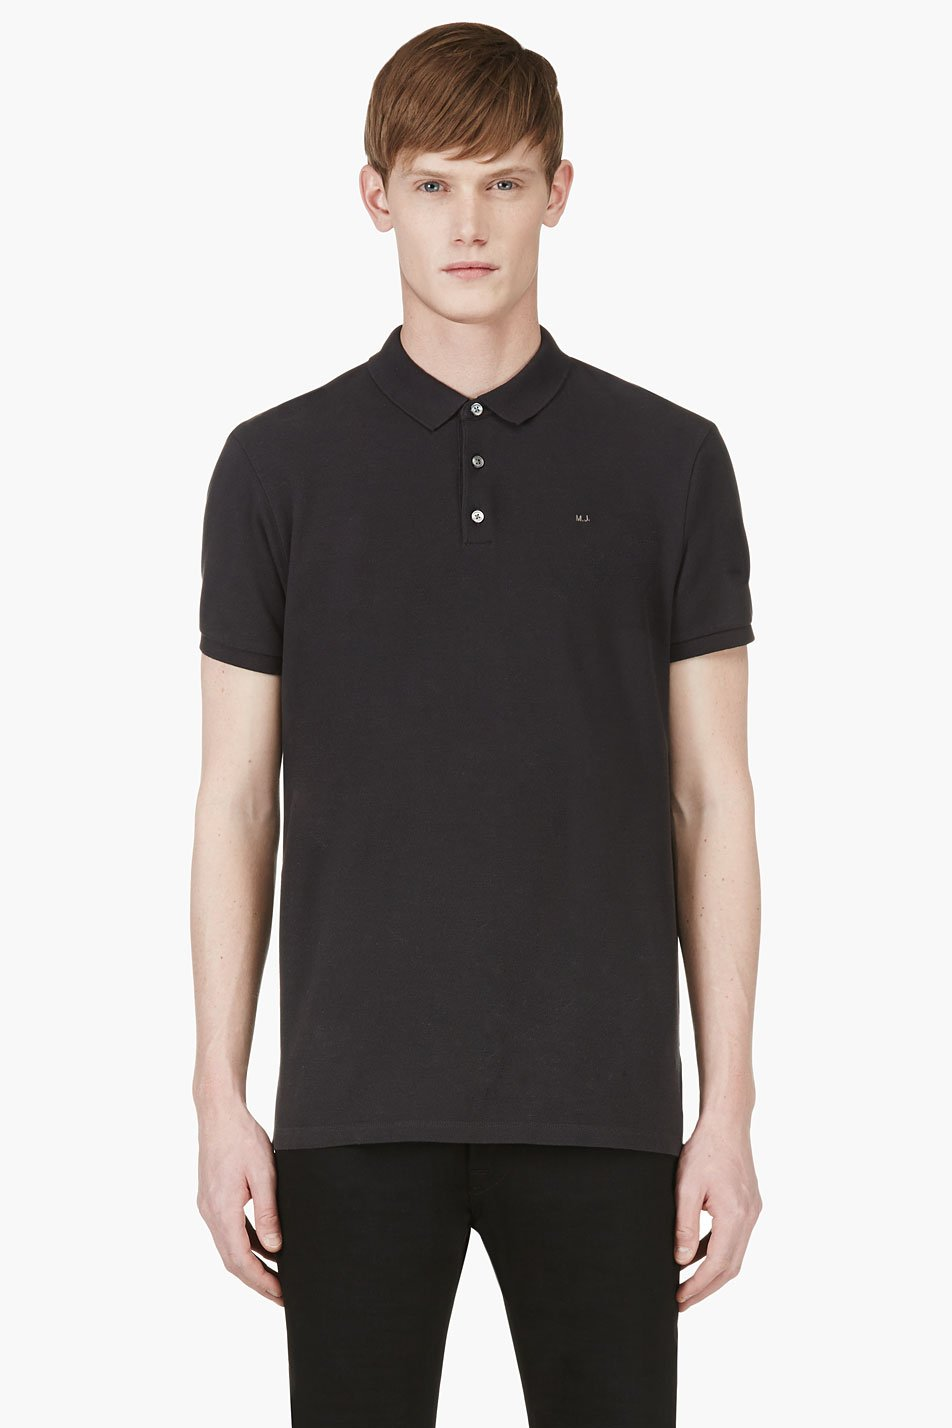 marc by marc jacobs black monogram polo